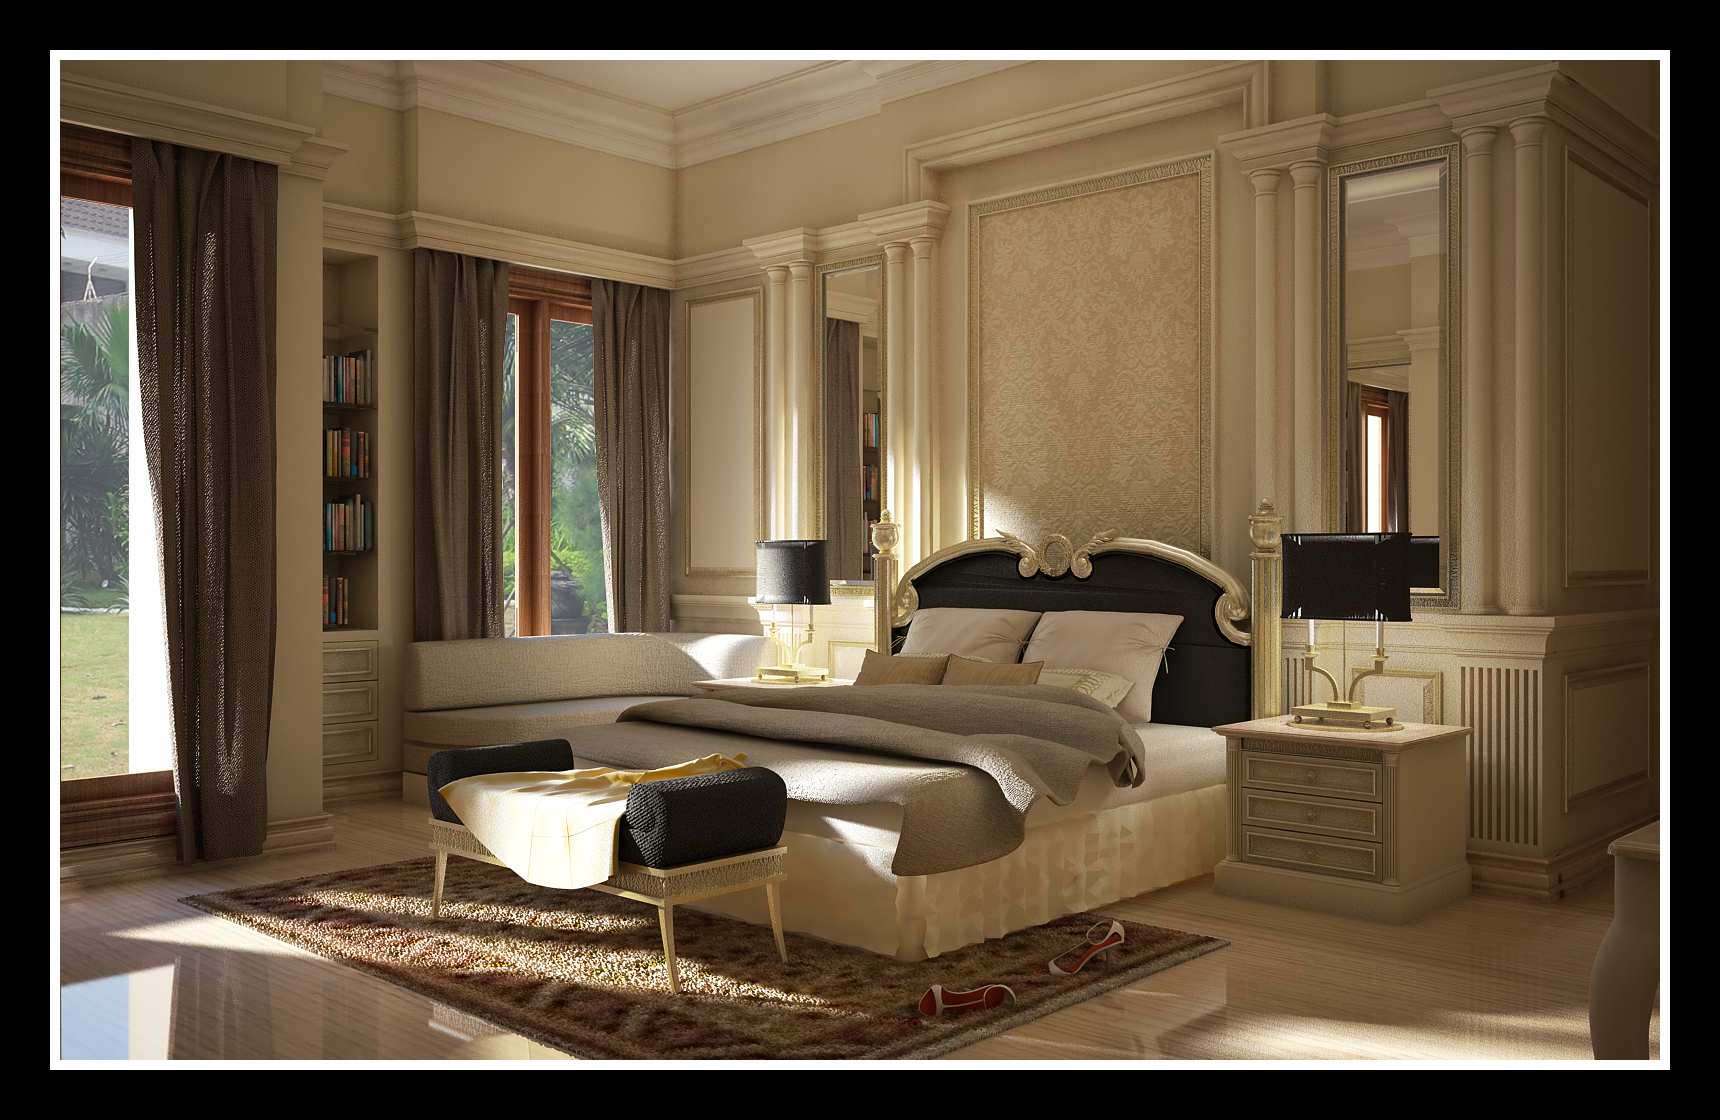 classic_bedroom_by_r3ynard